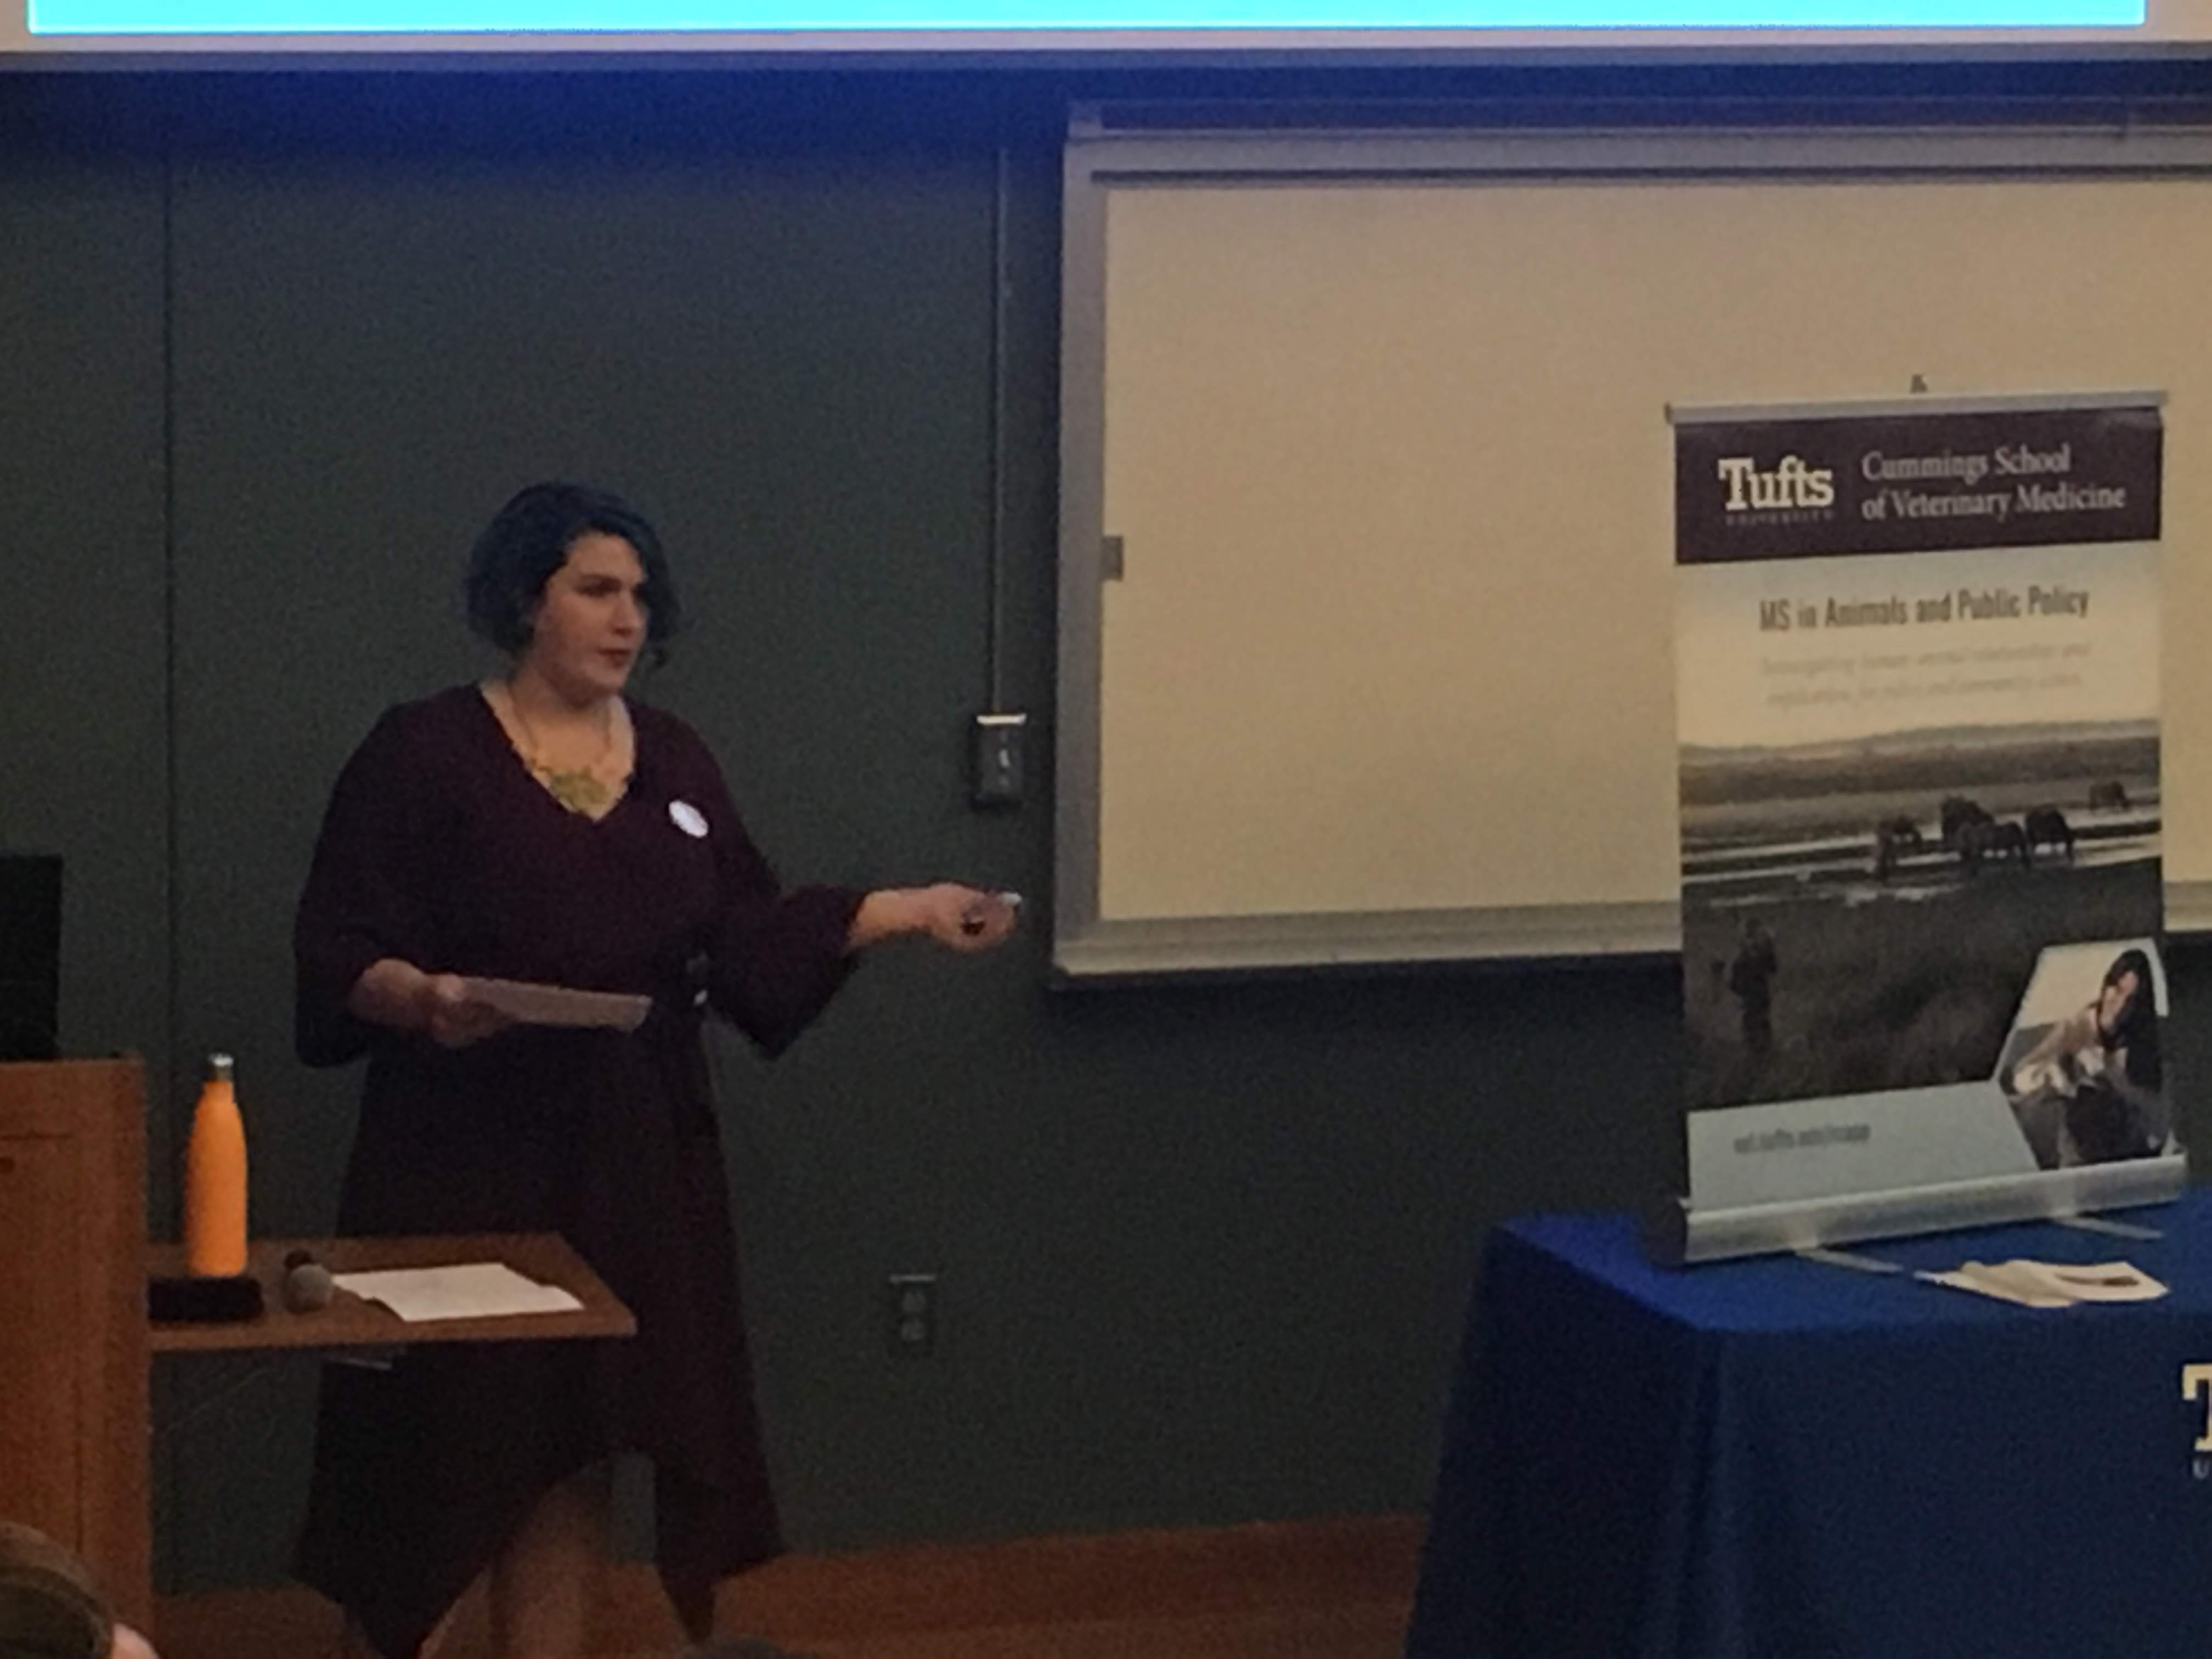 """Chelsea Blink presenting """" Inching Toward Liberation: Lobbying for Animals Under a Hostile Administration"""" at the MS in Animals and Public Policy Student Externship and Research Poster Presentations on September 8, 2018"""